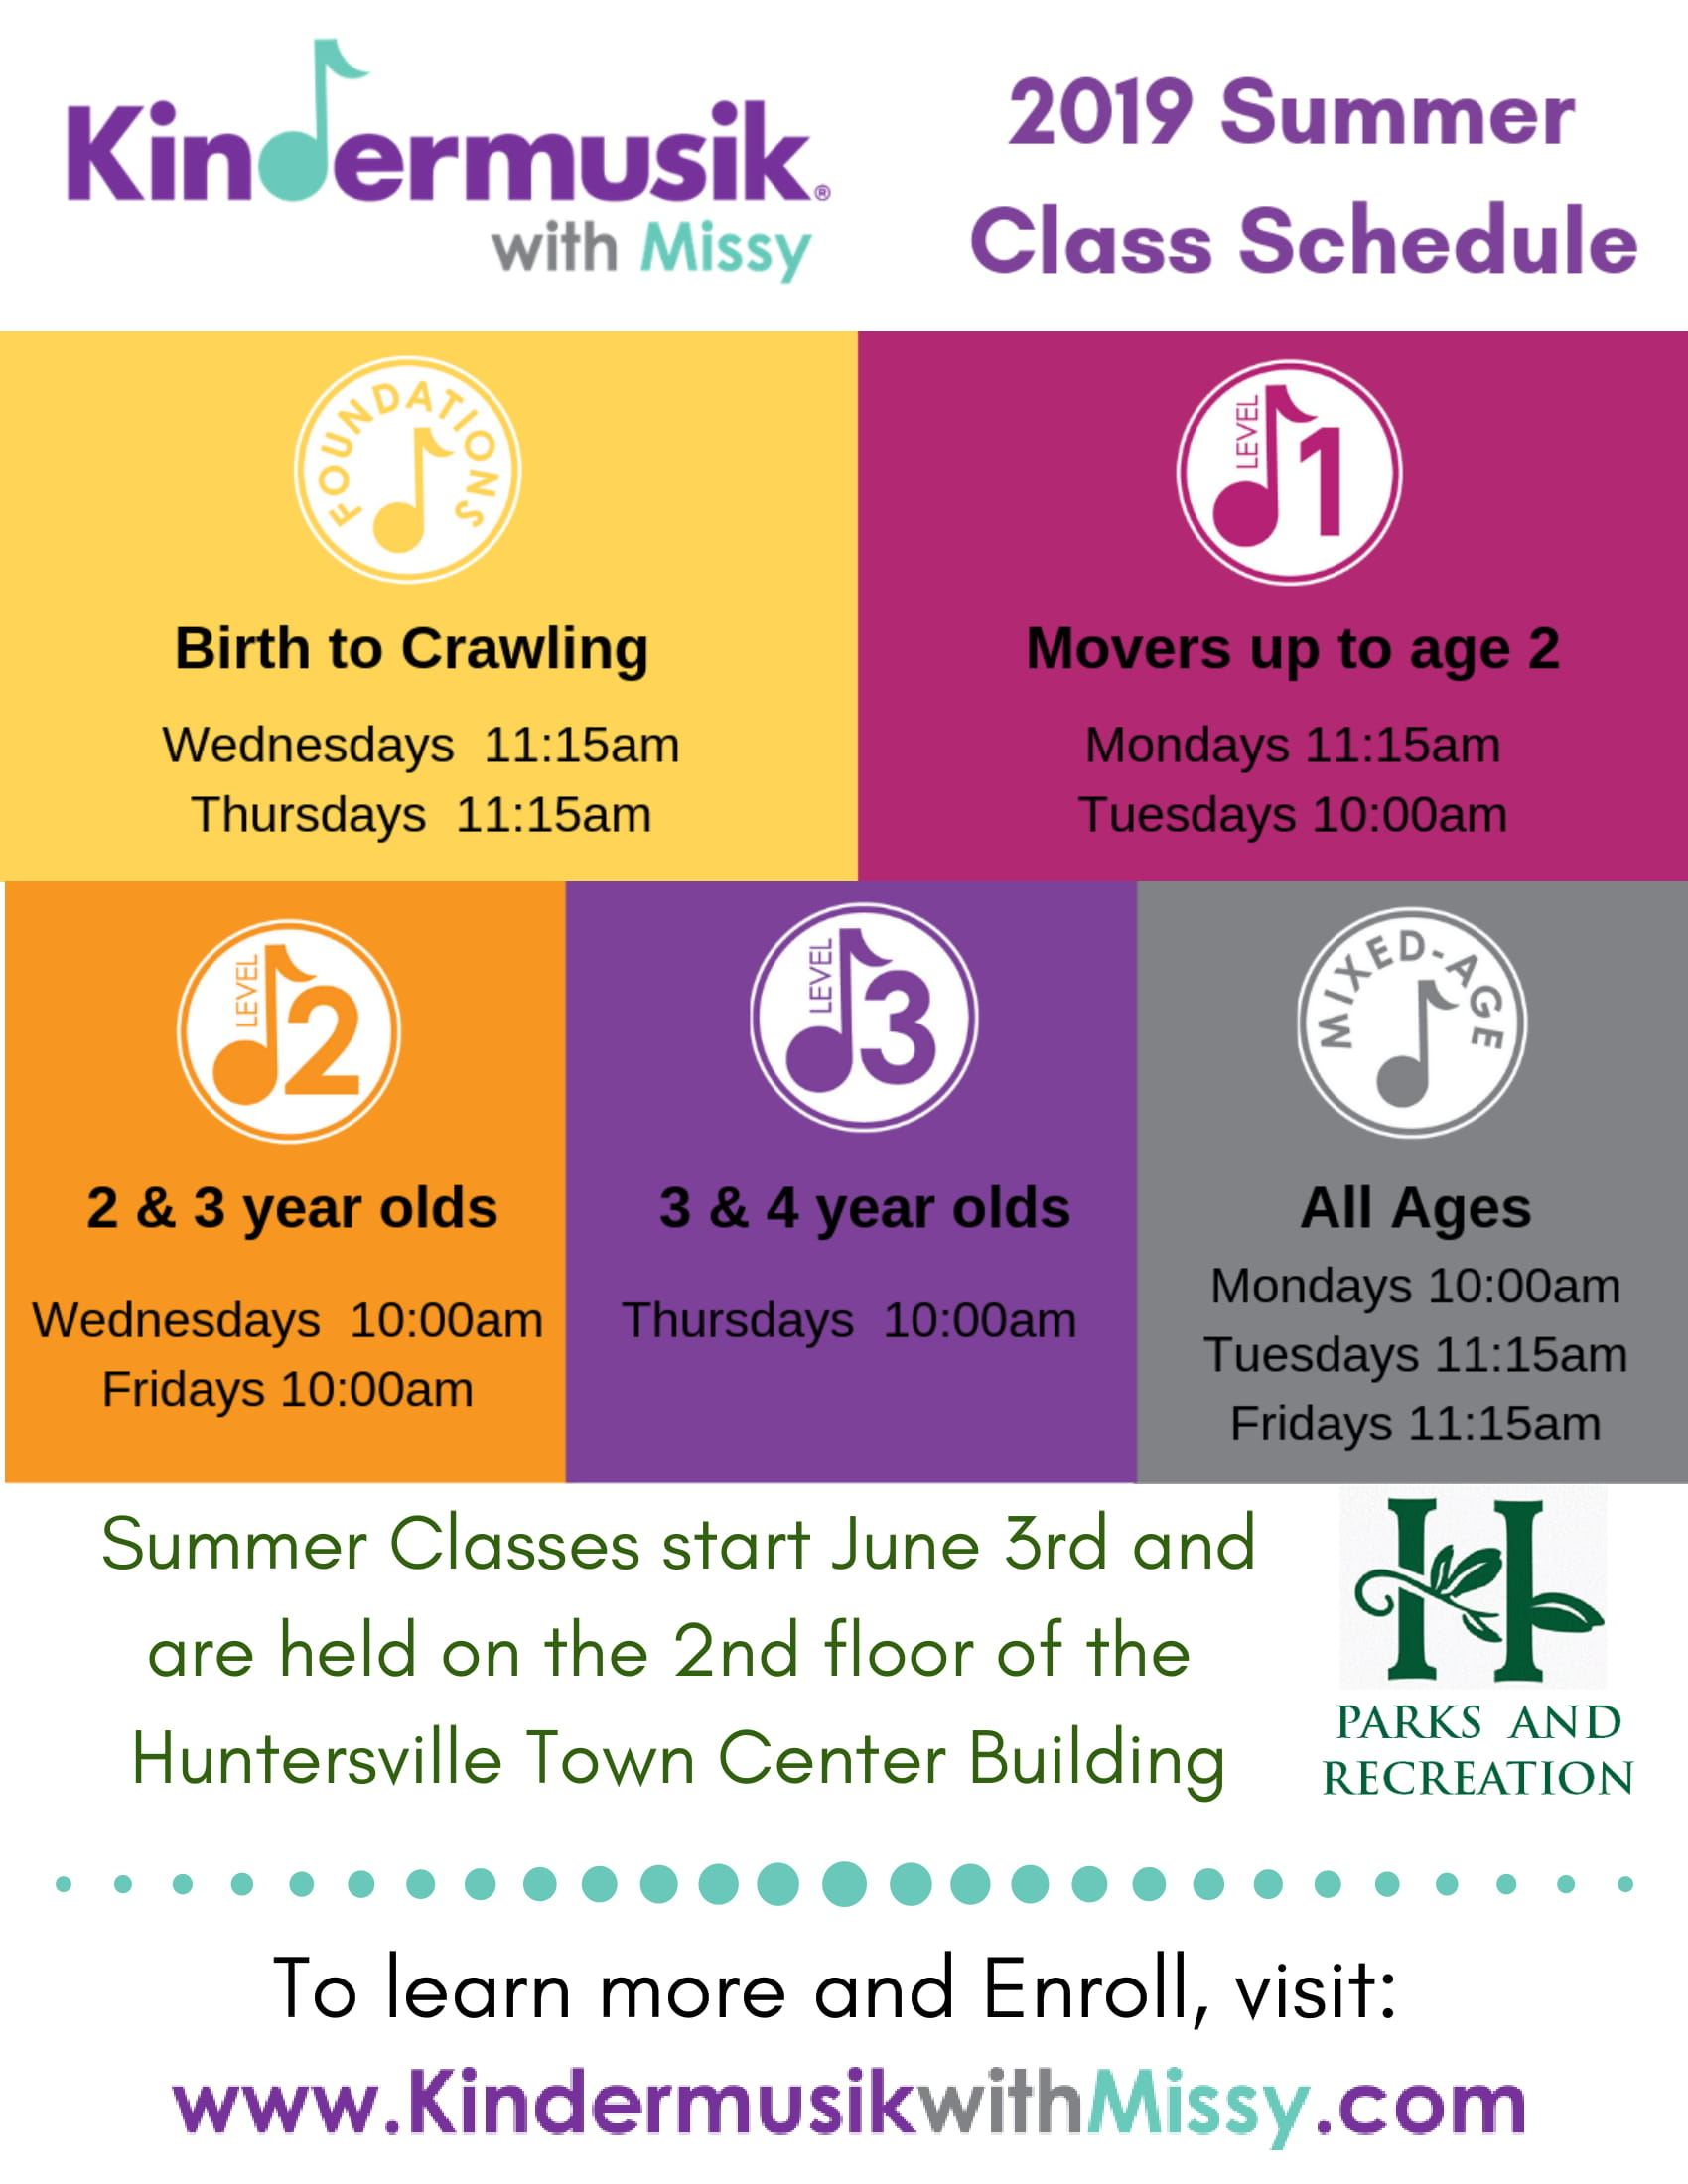 Summer Classes held on the 2nd floor of the Huntersville Town Center Building (3)-1